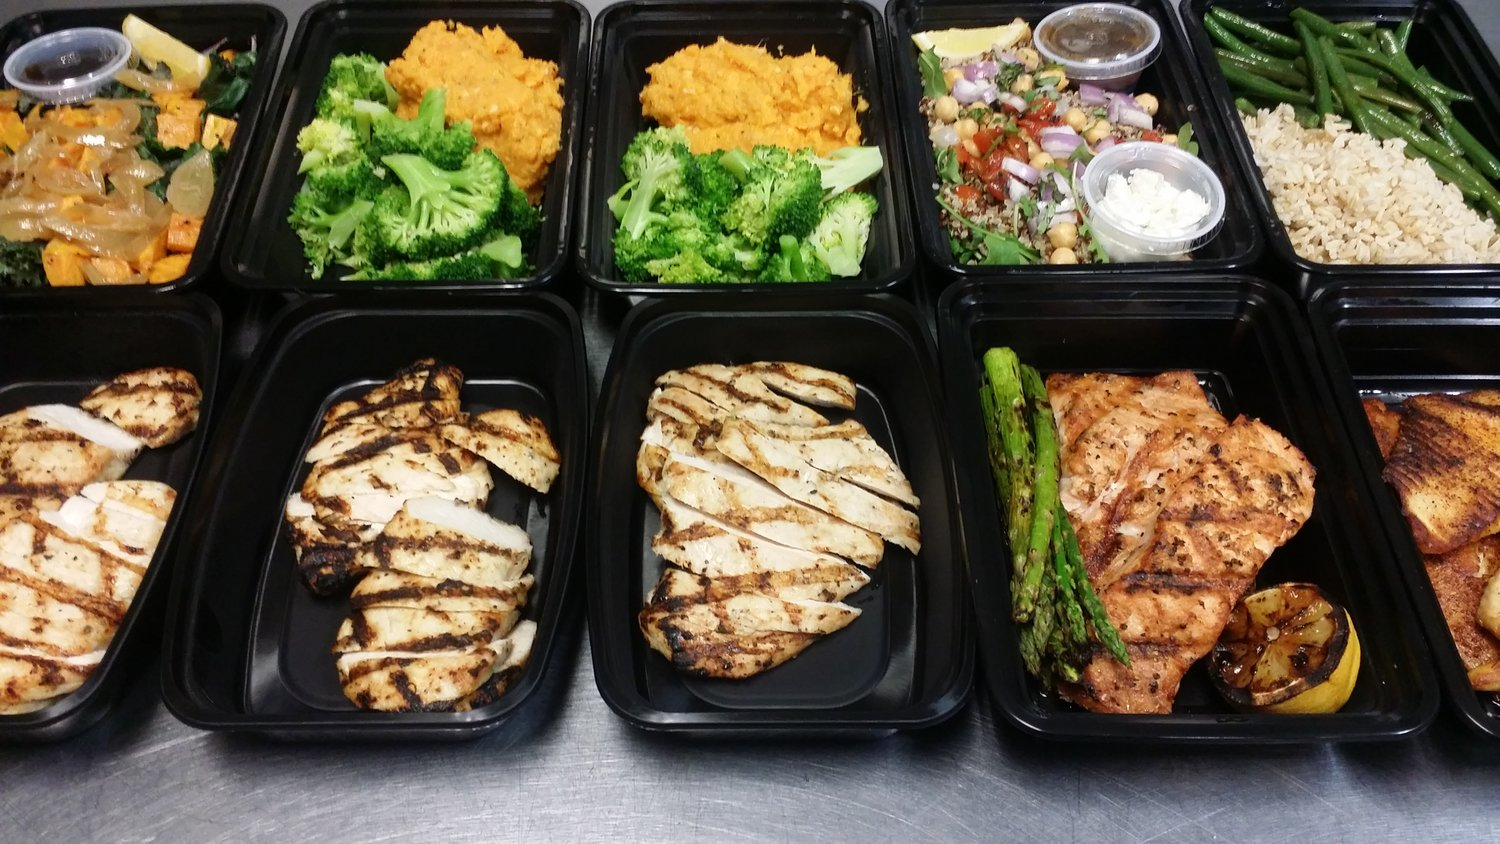 c264f9cc7721 Chef Curry To Go Meal Prep Order Online — Chef Curry To Go